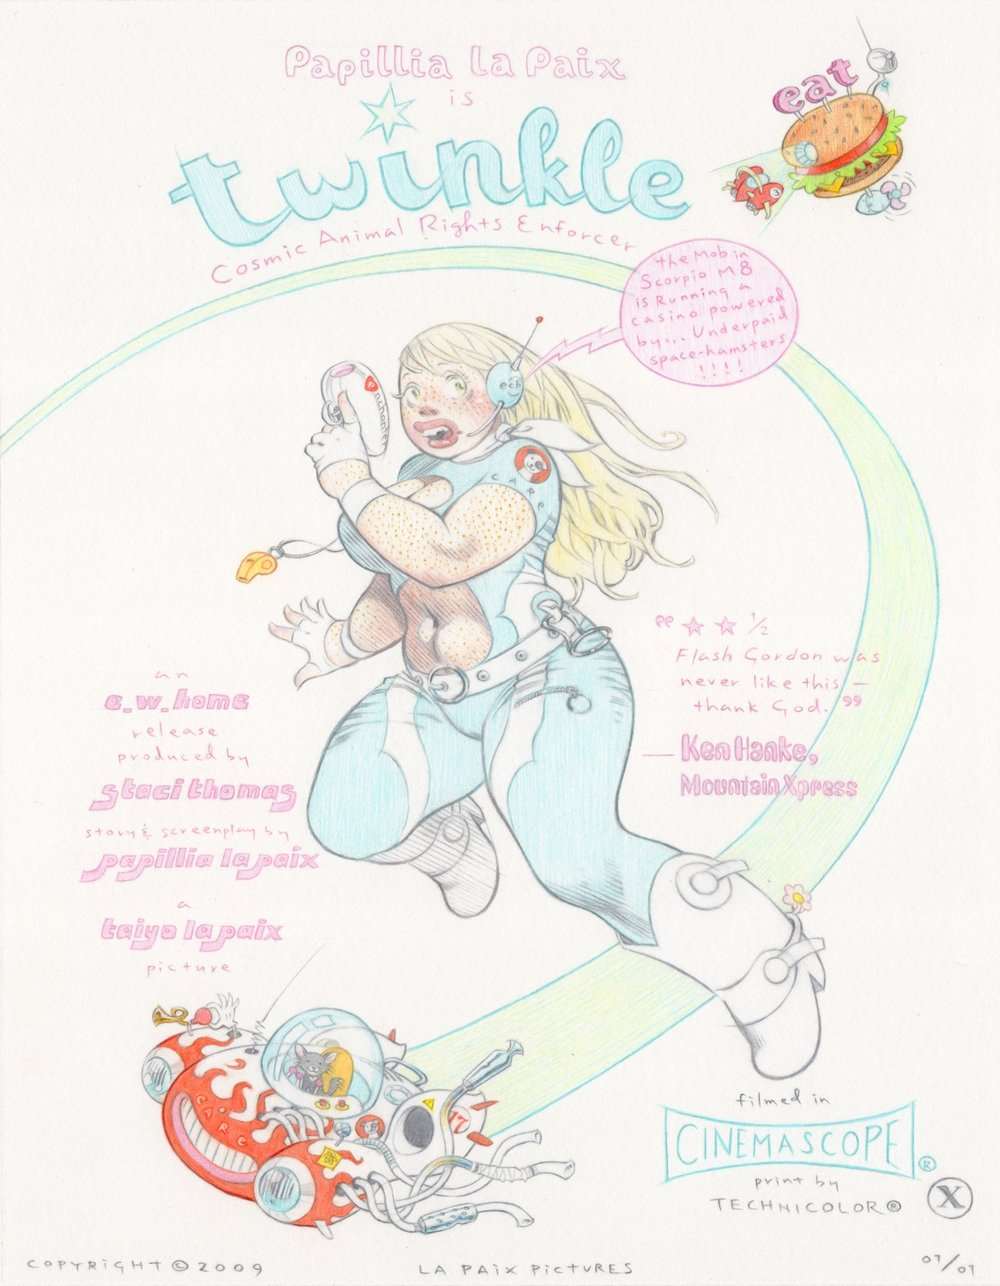 Twinkle, Cosmic Animal Rights Enforcer, 2009, pencil on paper, 11 x 8.5 inches, courtesy of Darwin and Kathleen Stanley